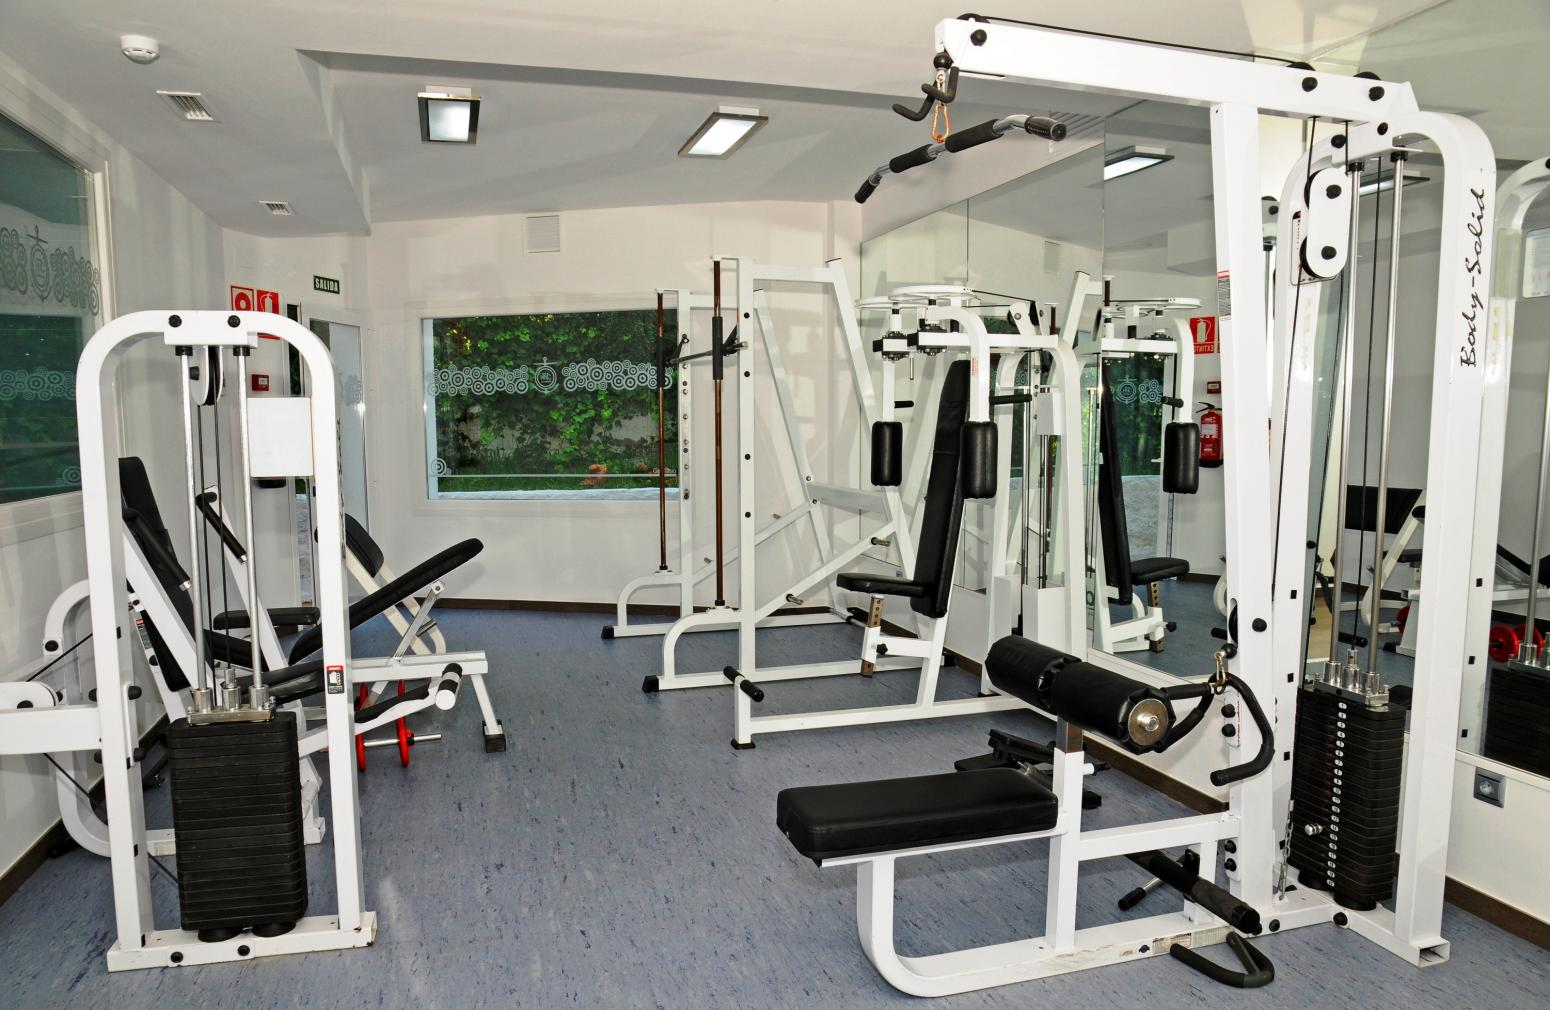 Hotel Nerja Club (Nerja). Gym